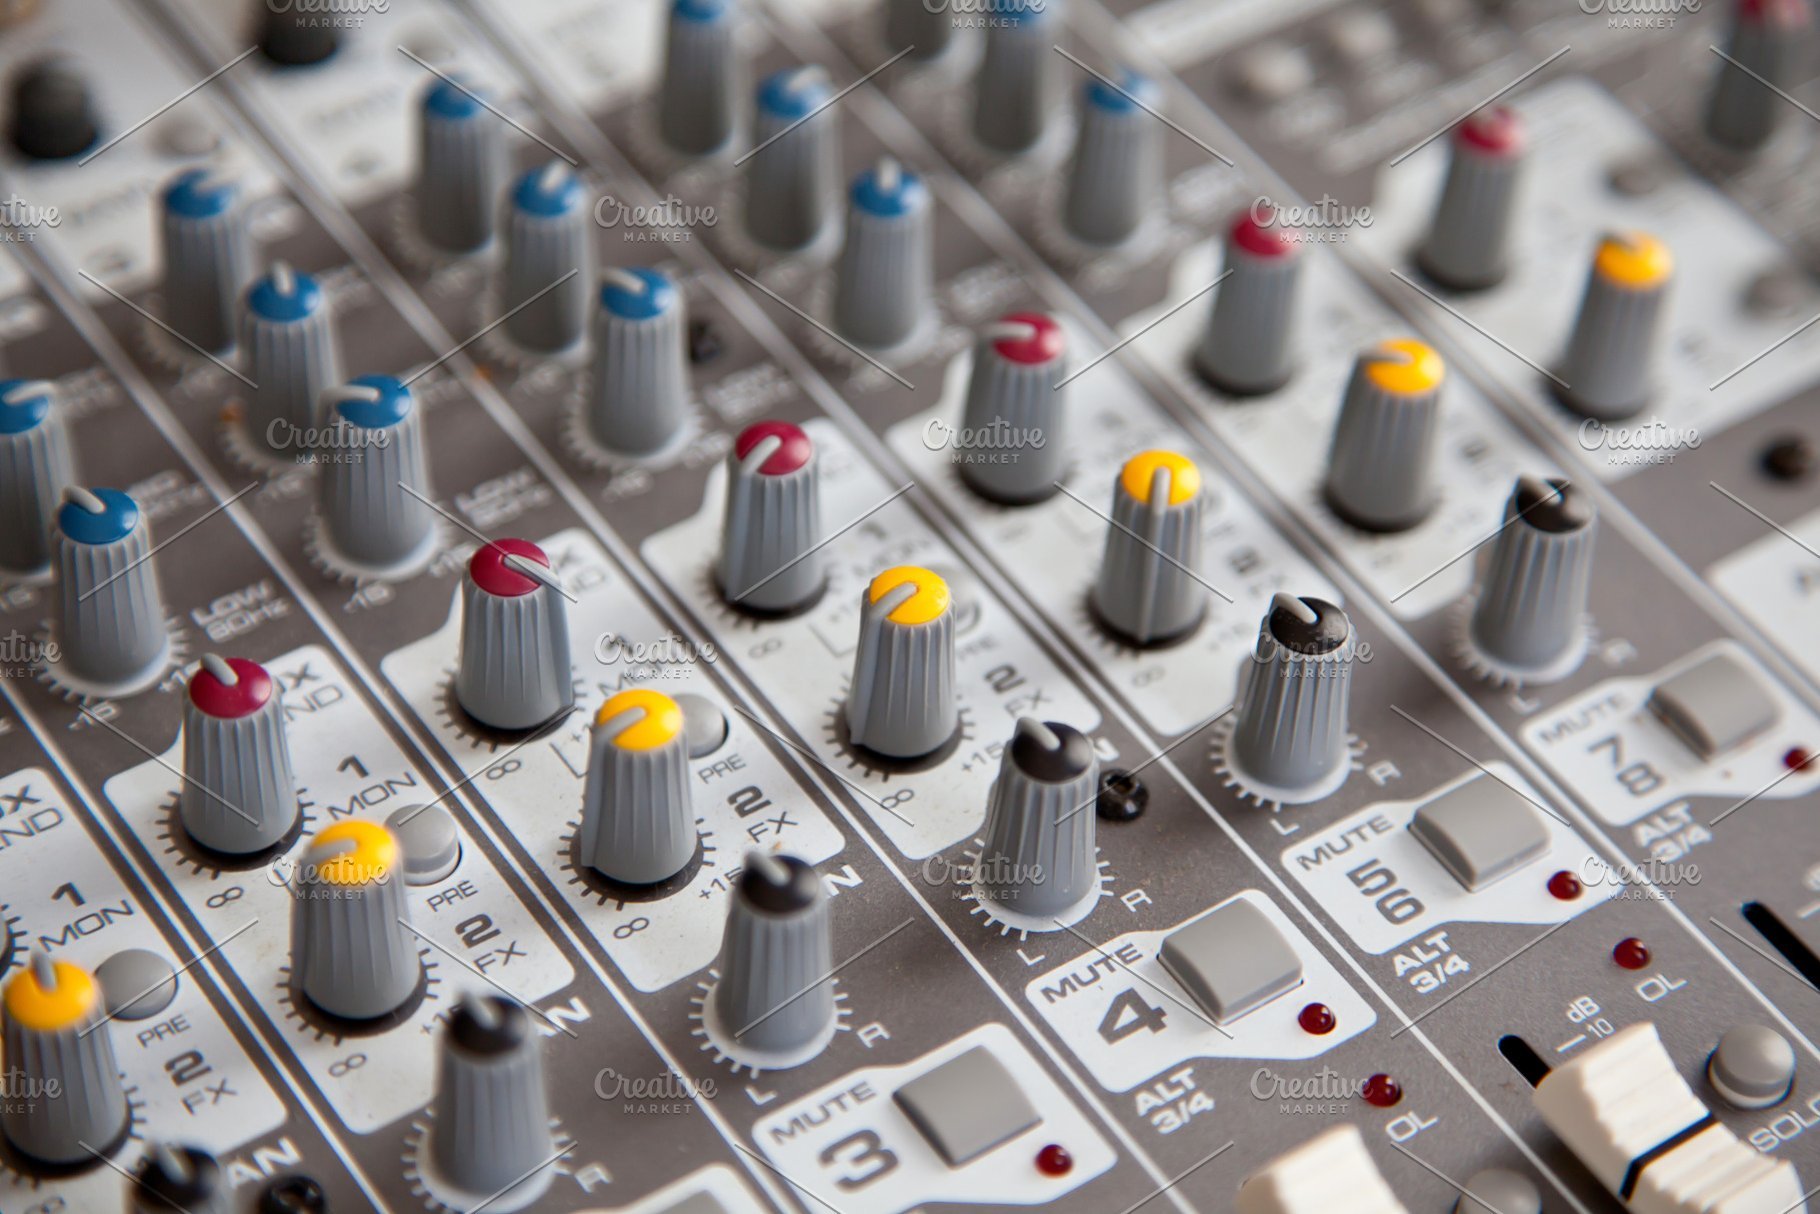 Sound mixer sliders faders knobs